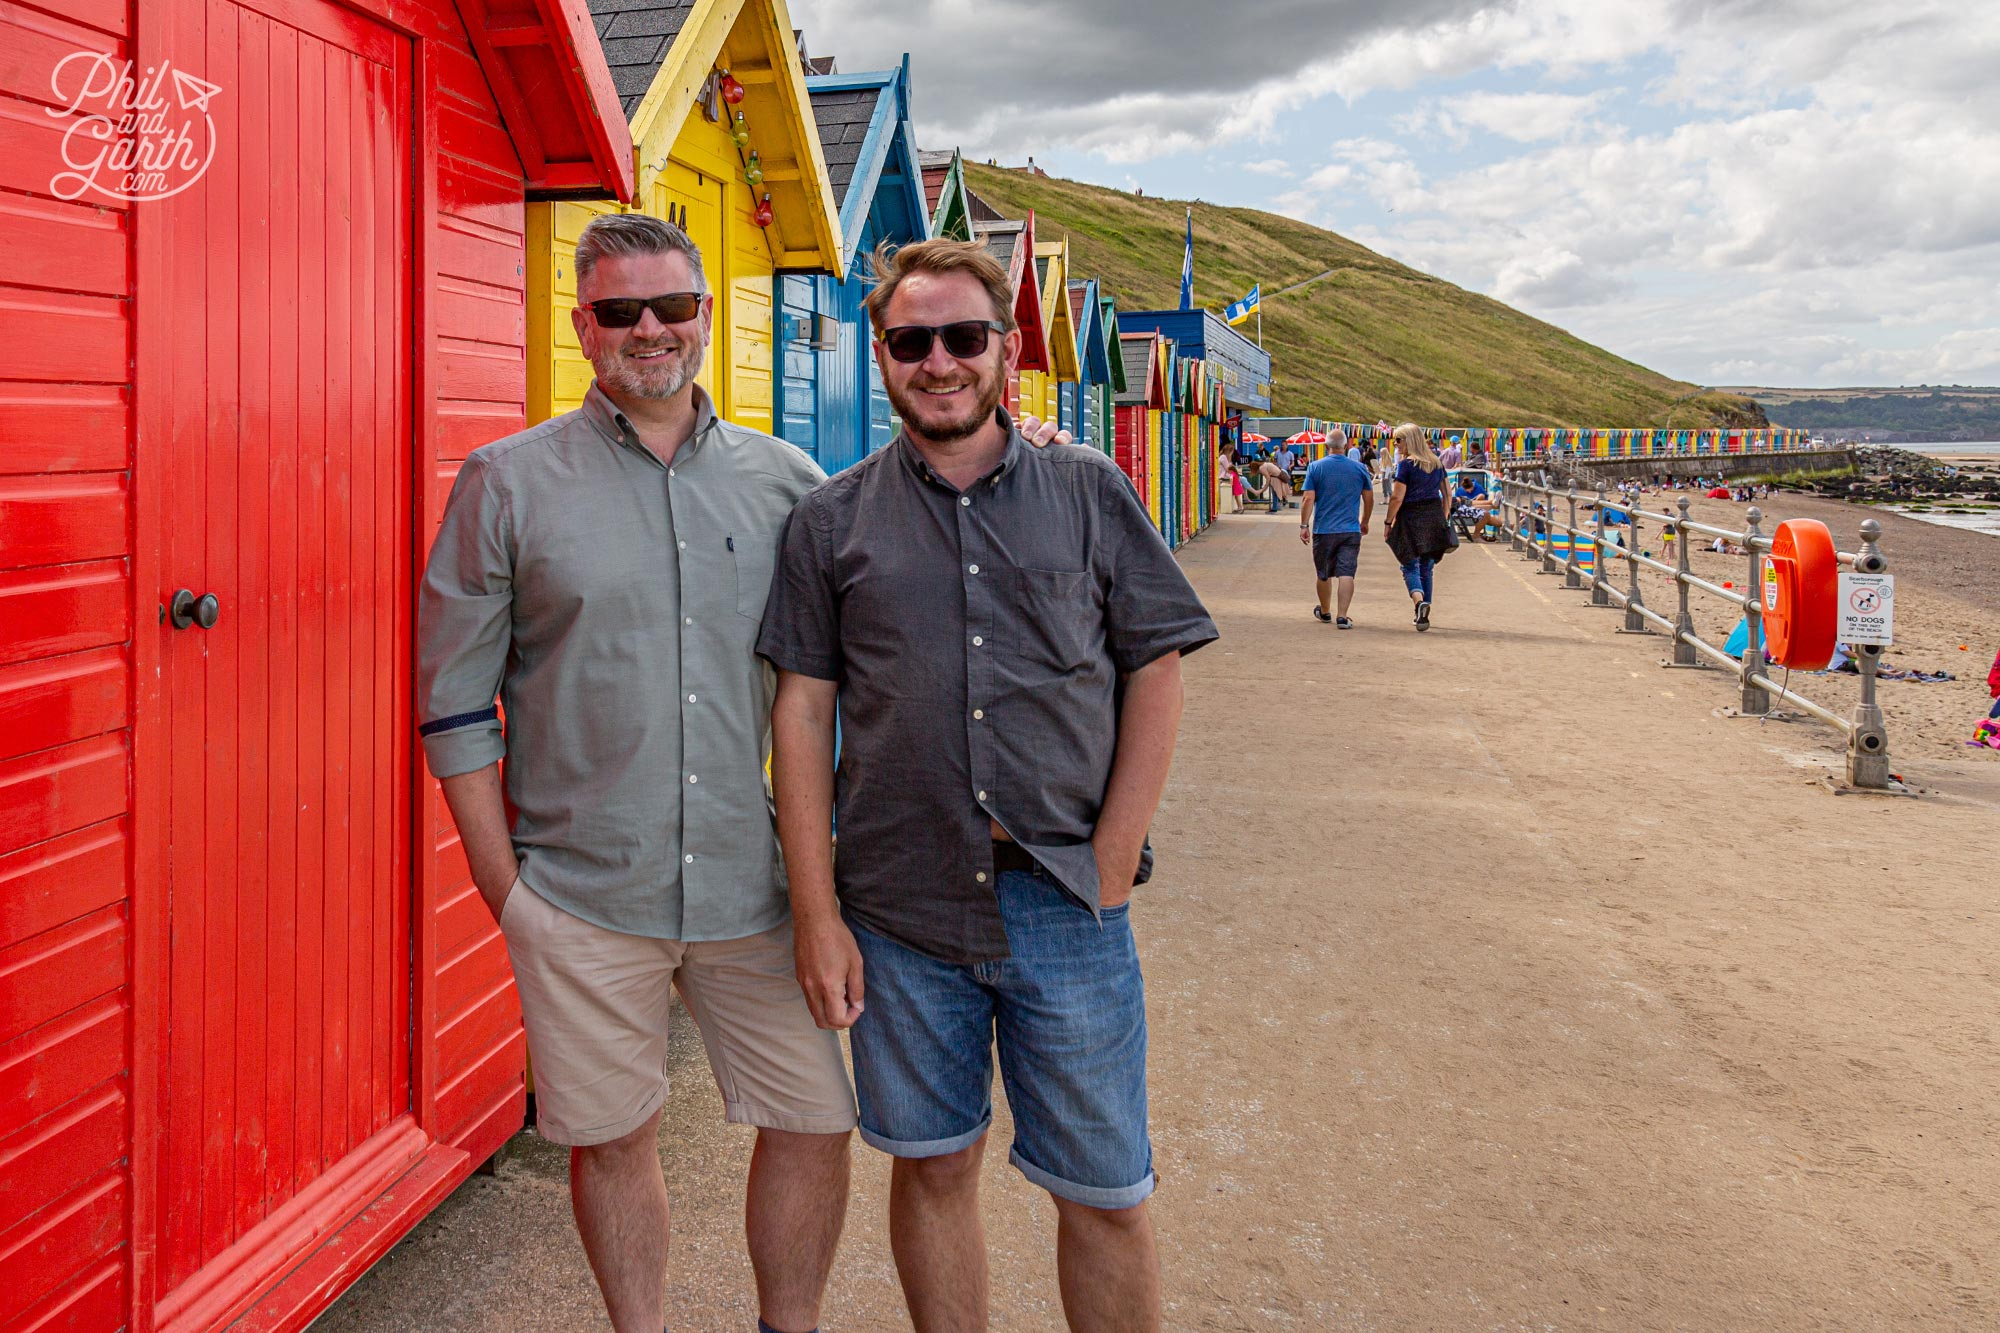 Phil and Garth's Top 5 Whitby Tips